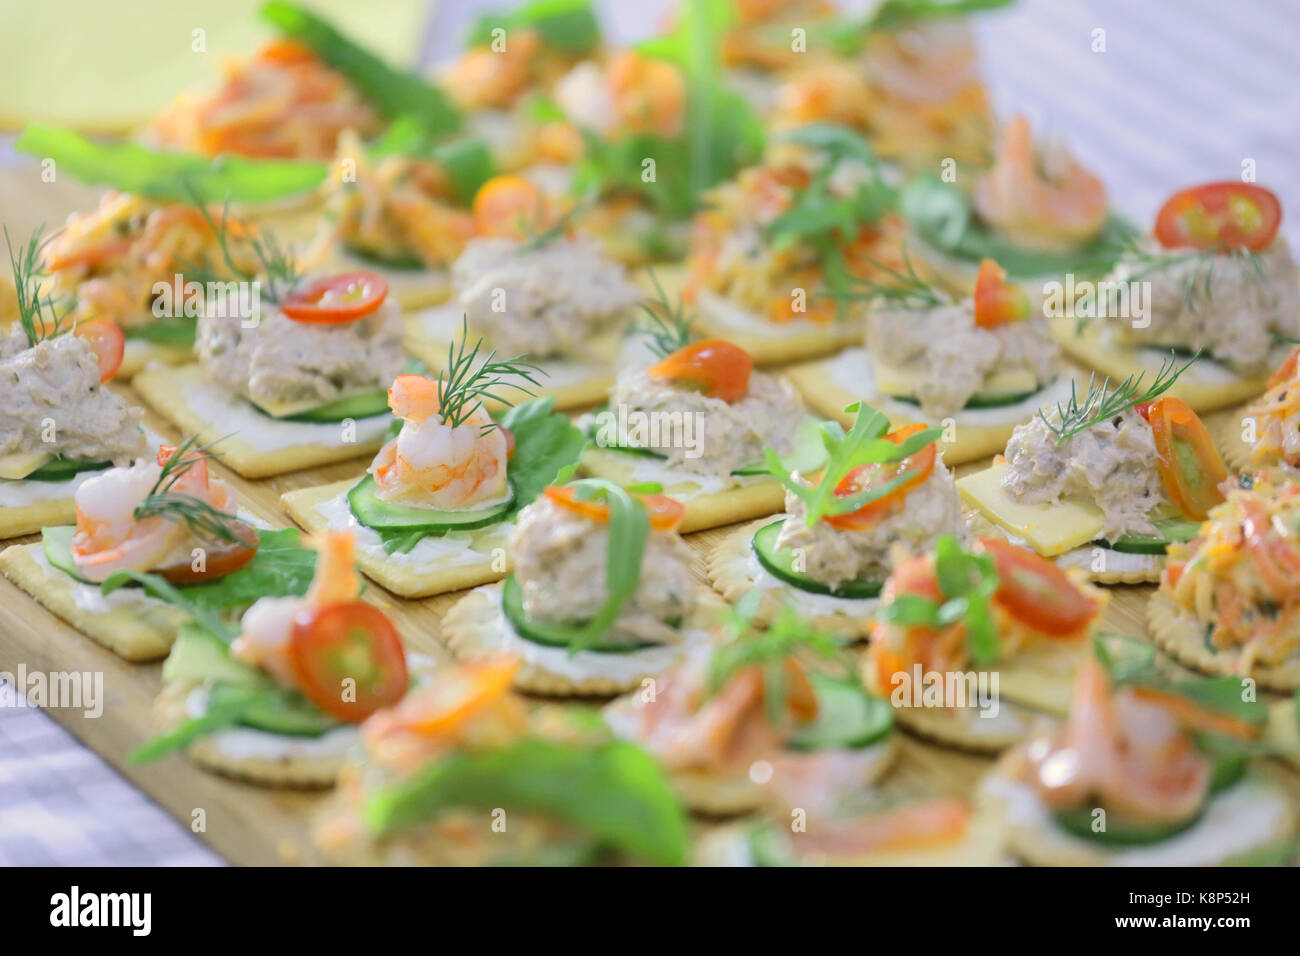 Tuna topping stock photos tuna topping stock images alamy for Canape toppings